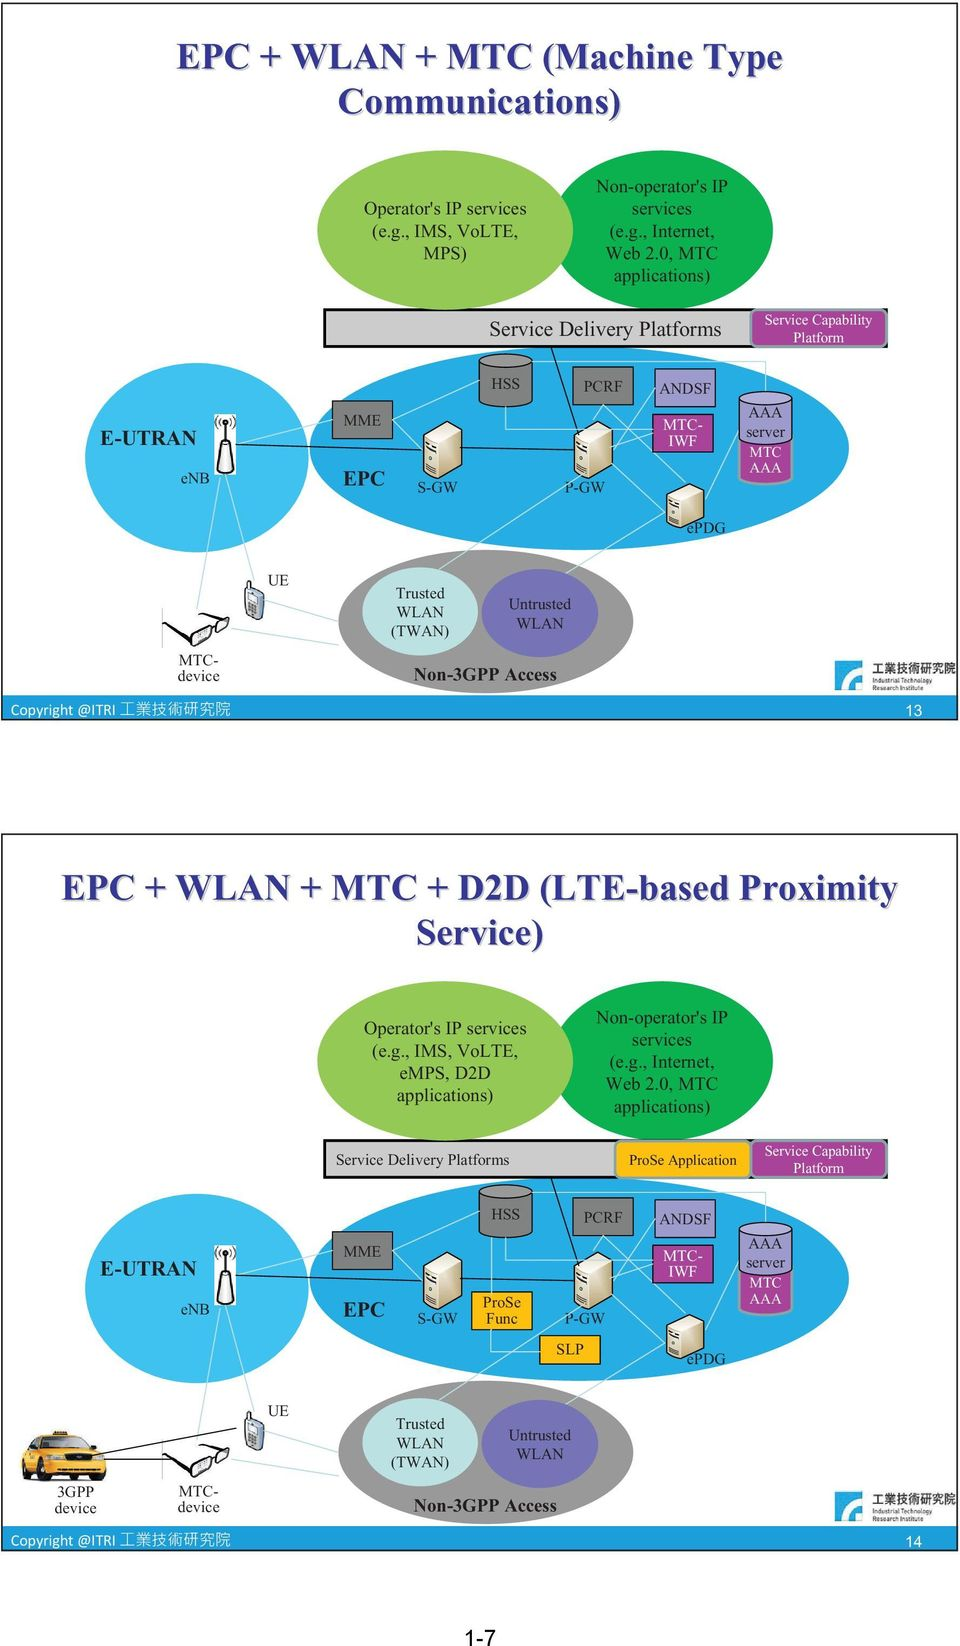 Access Copyright @ITRI 13 EPC + + MTC + D2D (LTE-based Proximity Service) Operator's IP services (e.g., IMS, VoLTE, emps, D2D applications) Service Delivery Platforms Non-operator's IP services (e.